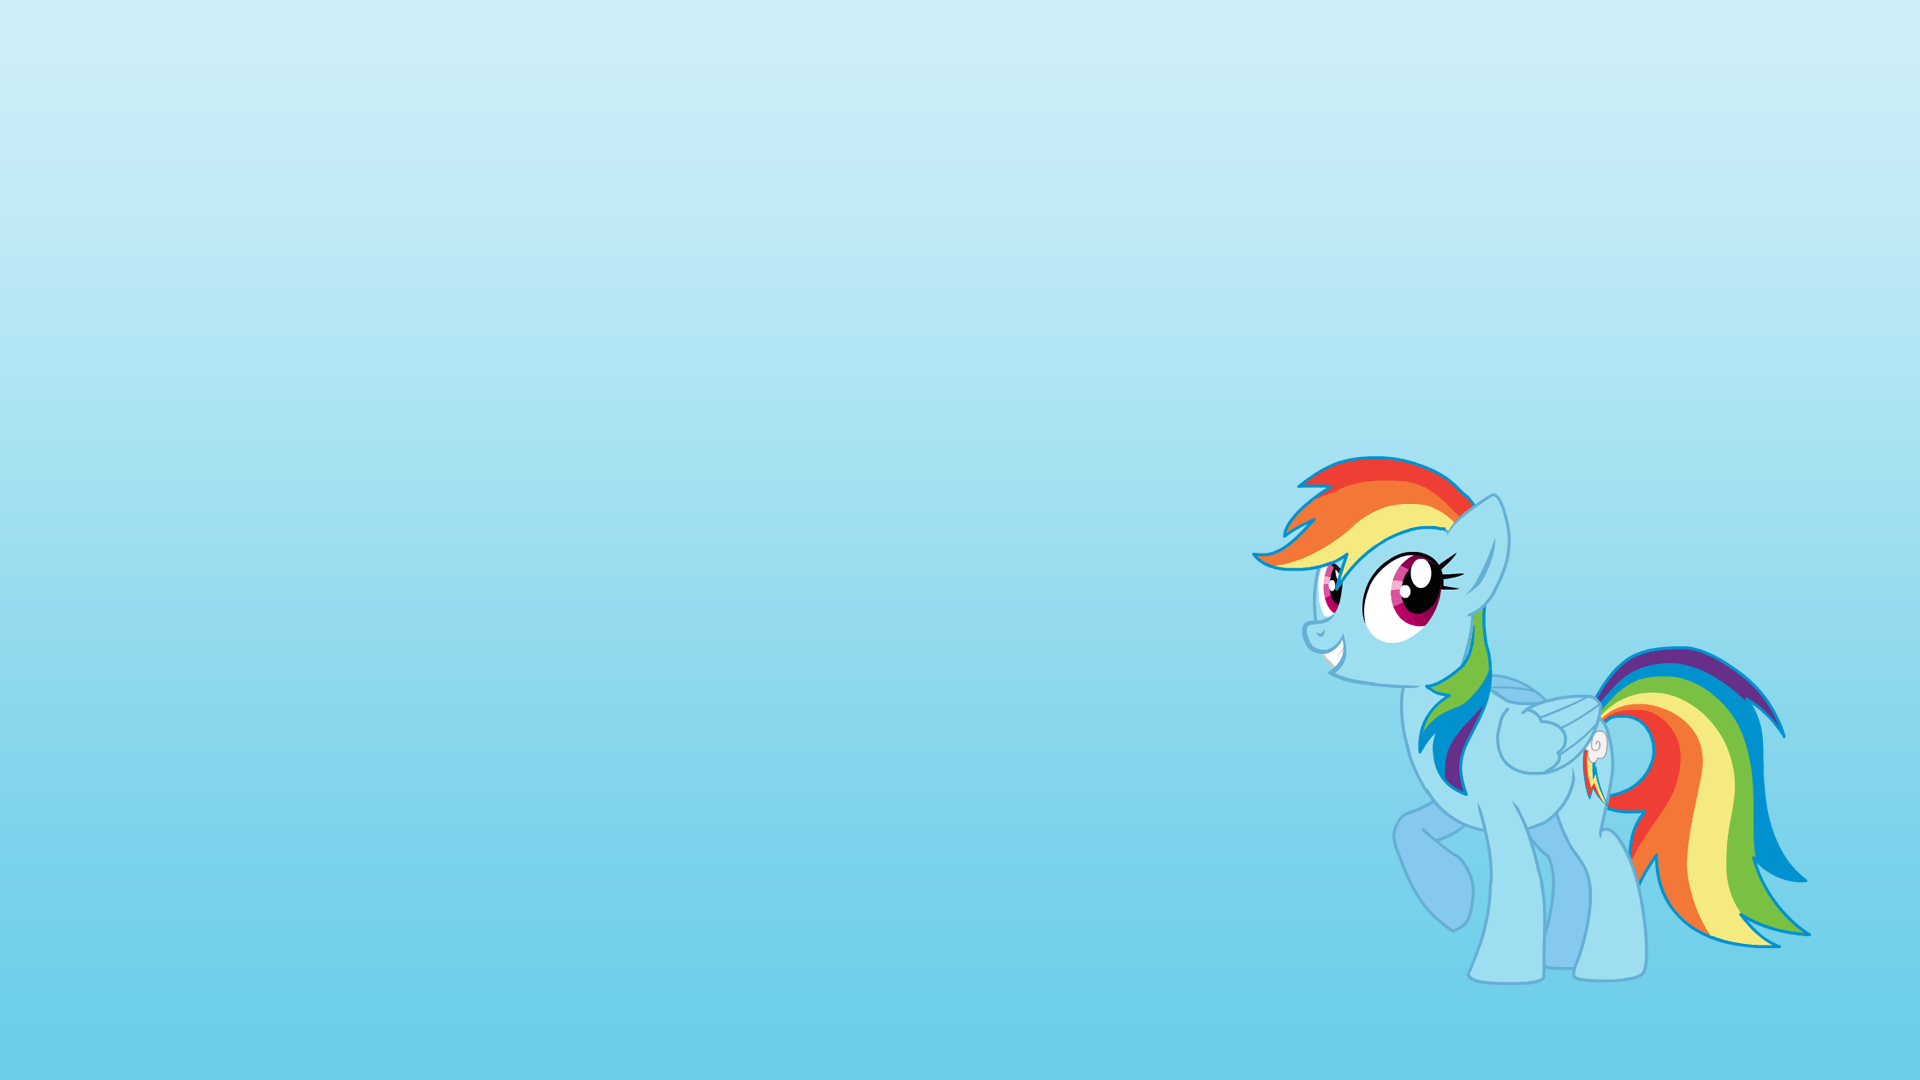 mlp background pony wallpapers - photo #34